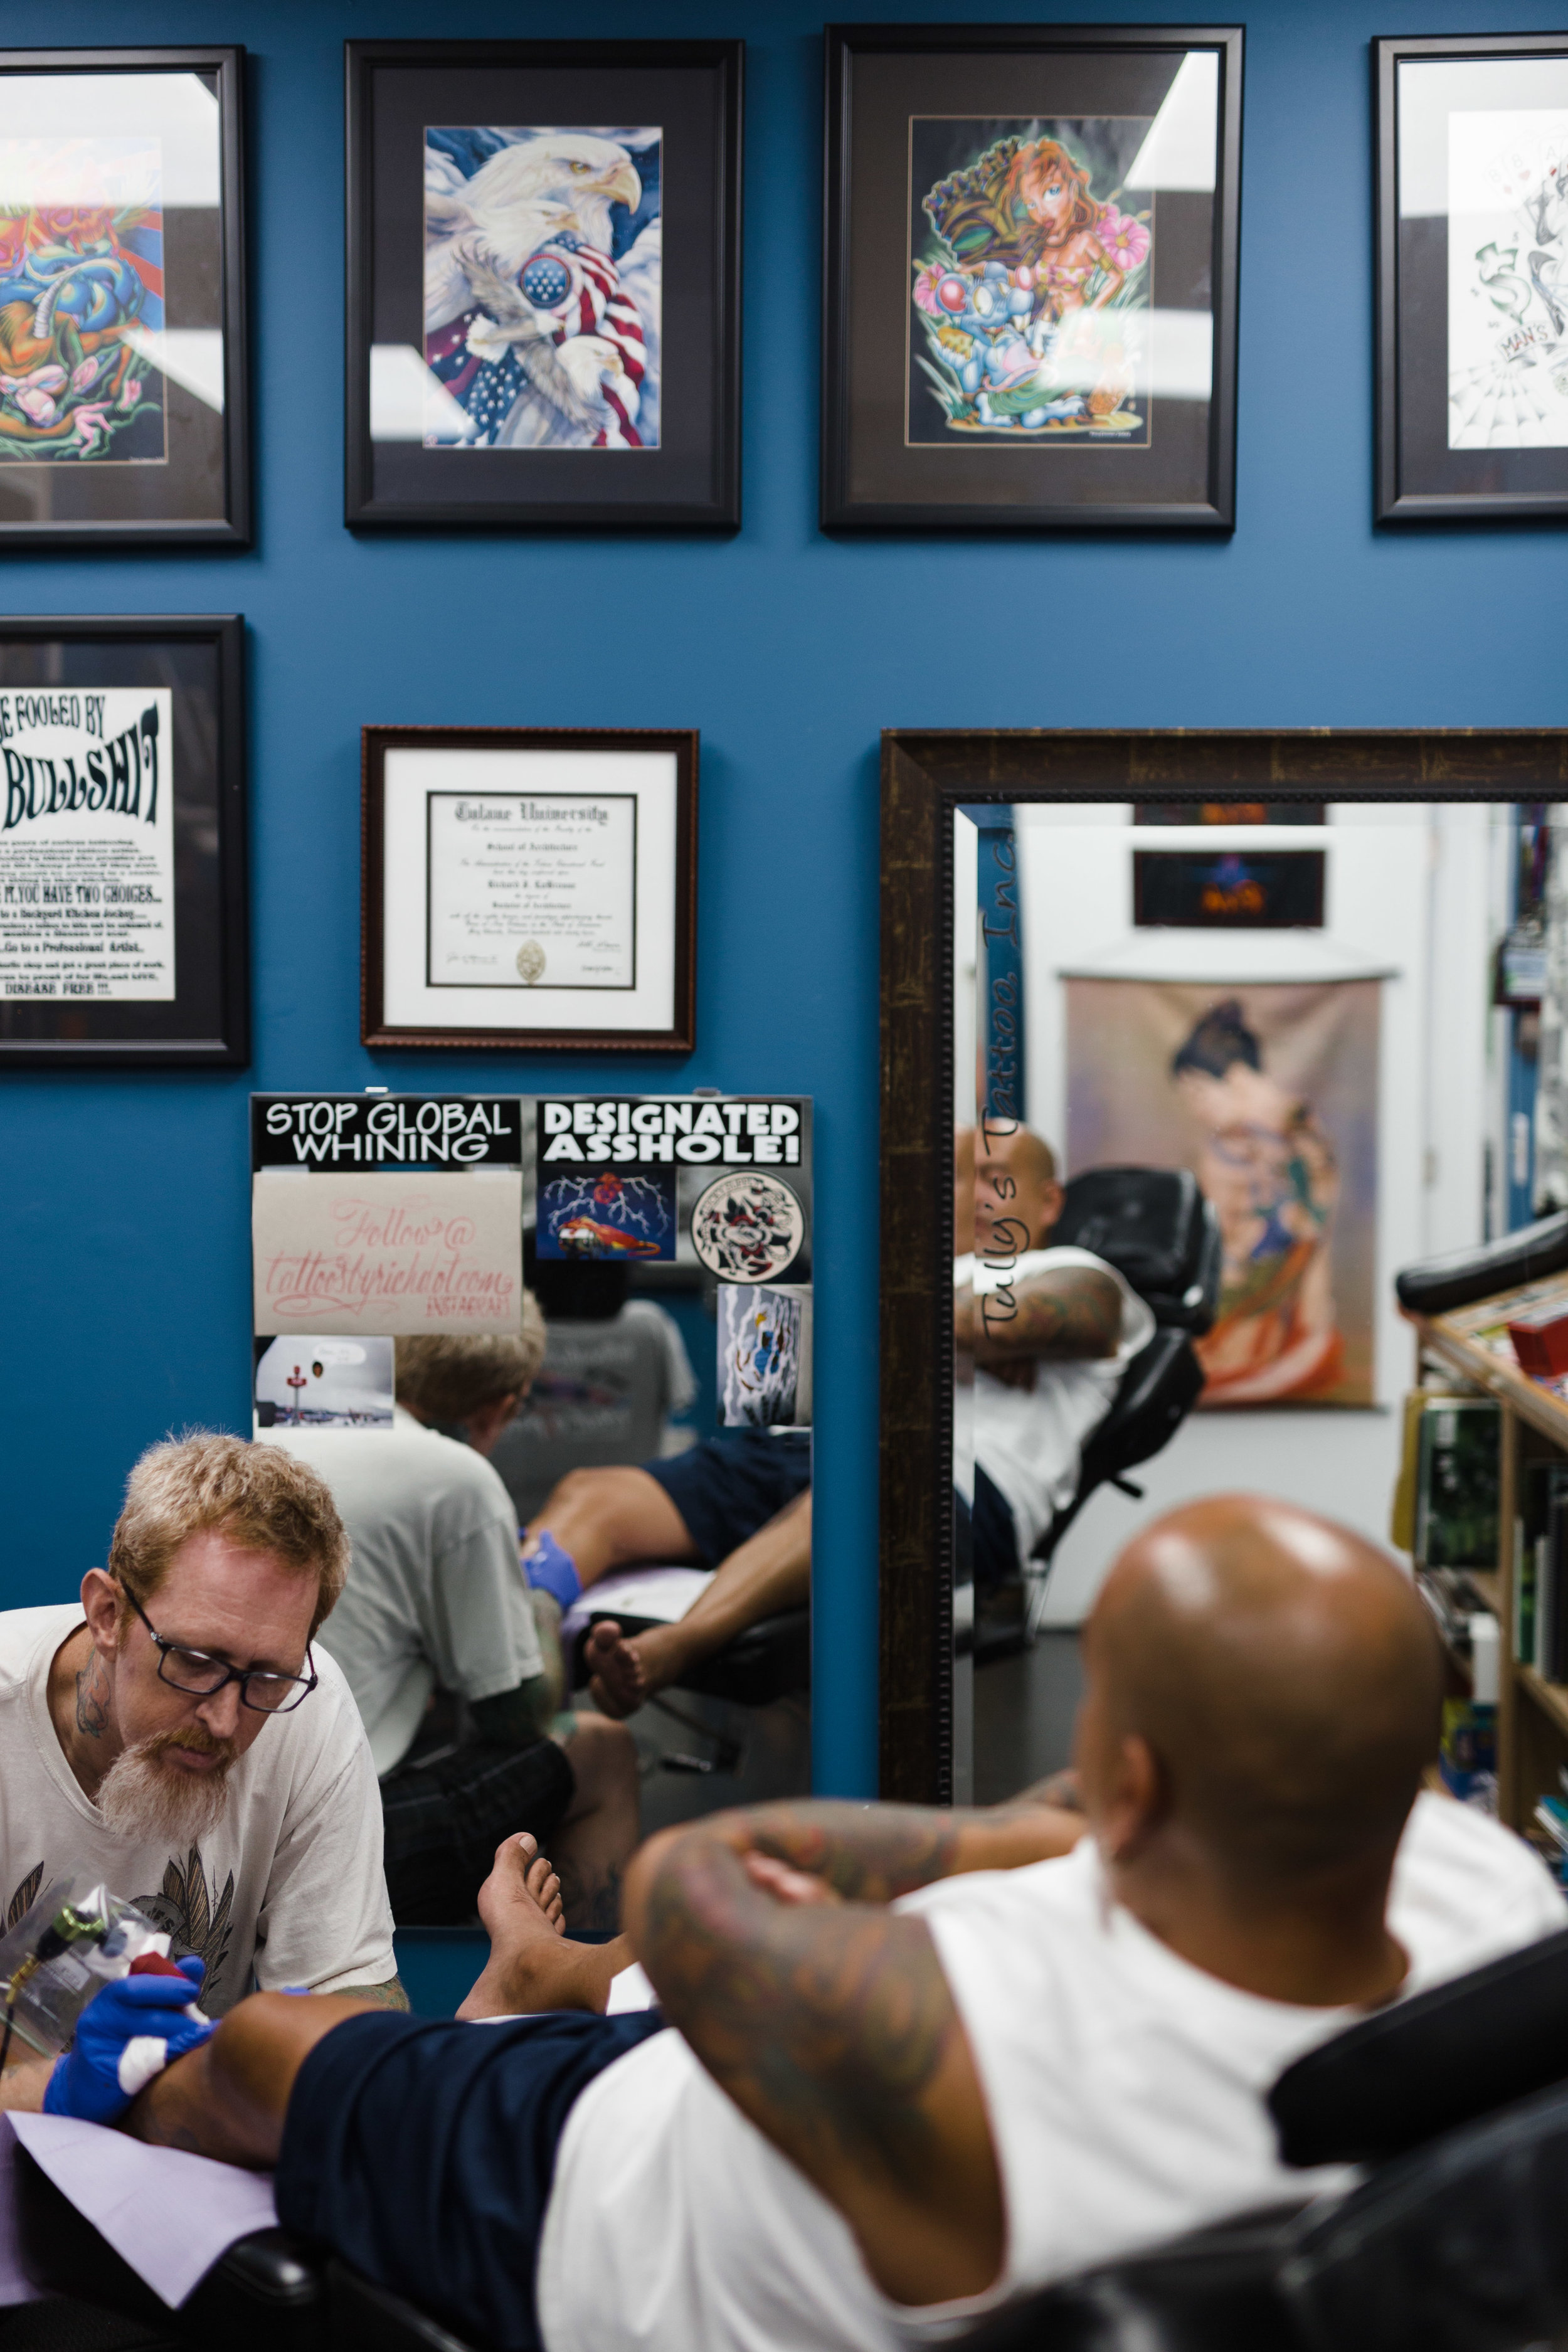 Rich tattoos in his workspace with his Tulane diploma hanging above